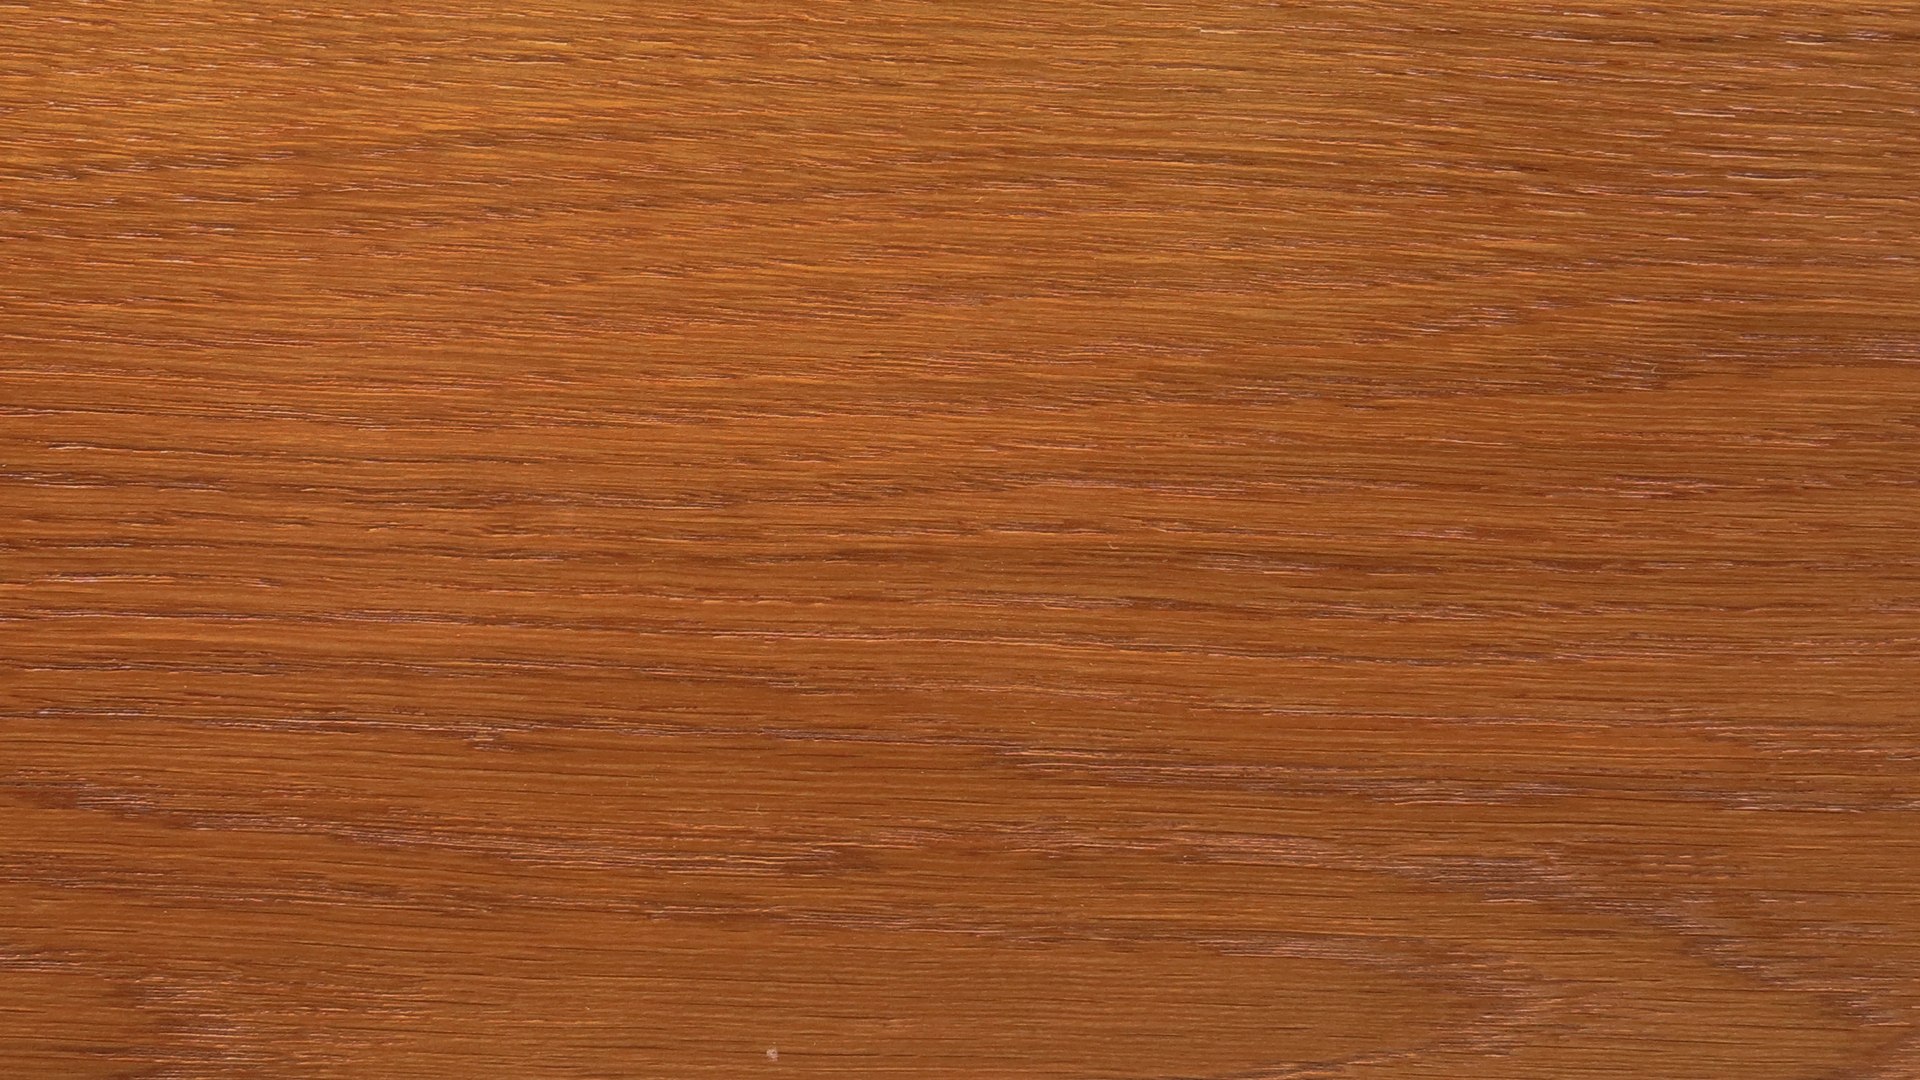 colorwood 06_57b73419d9d4d